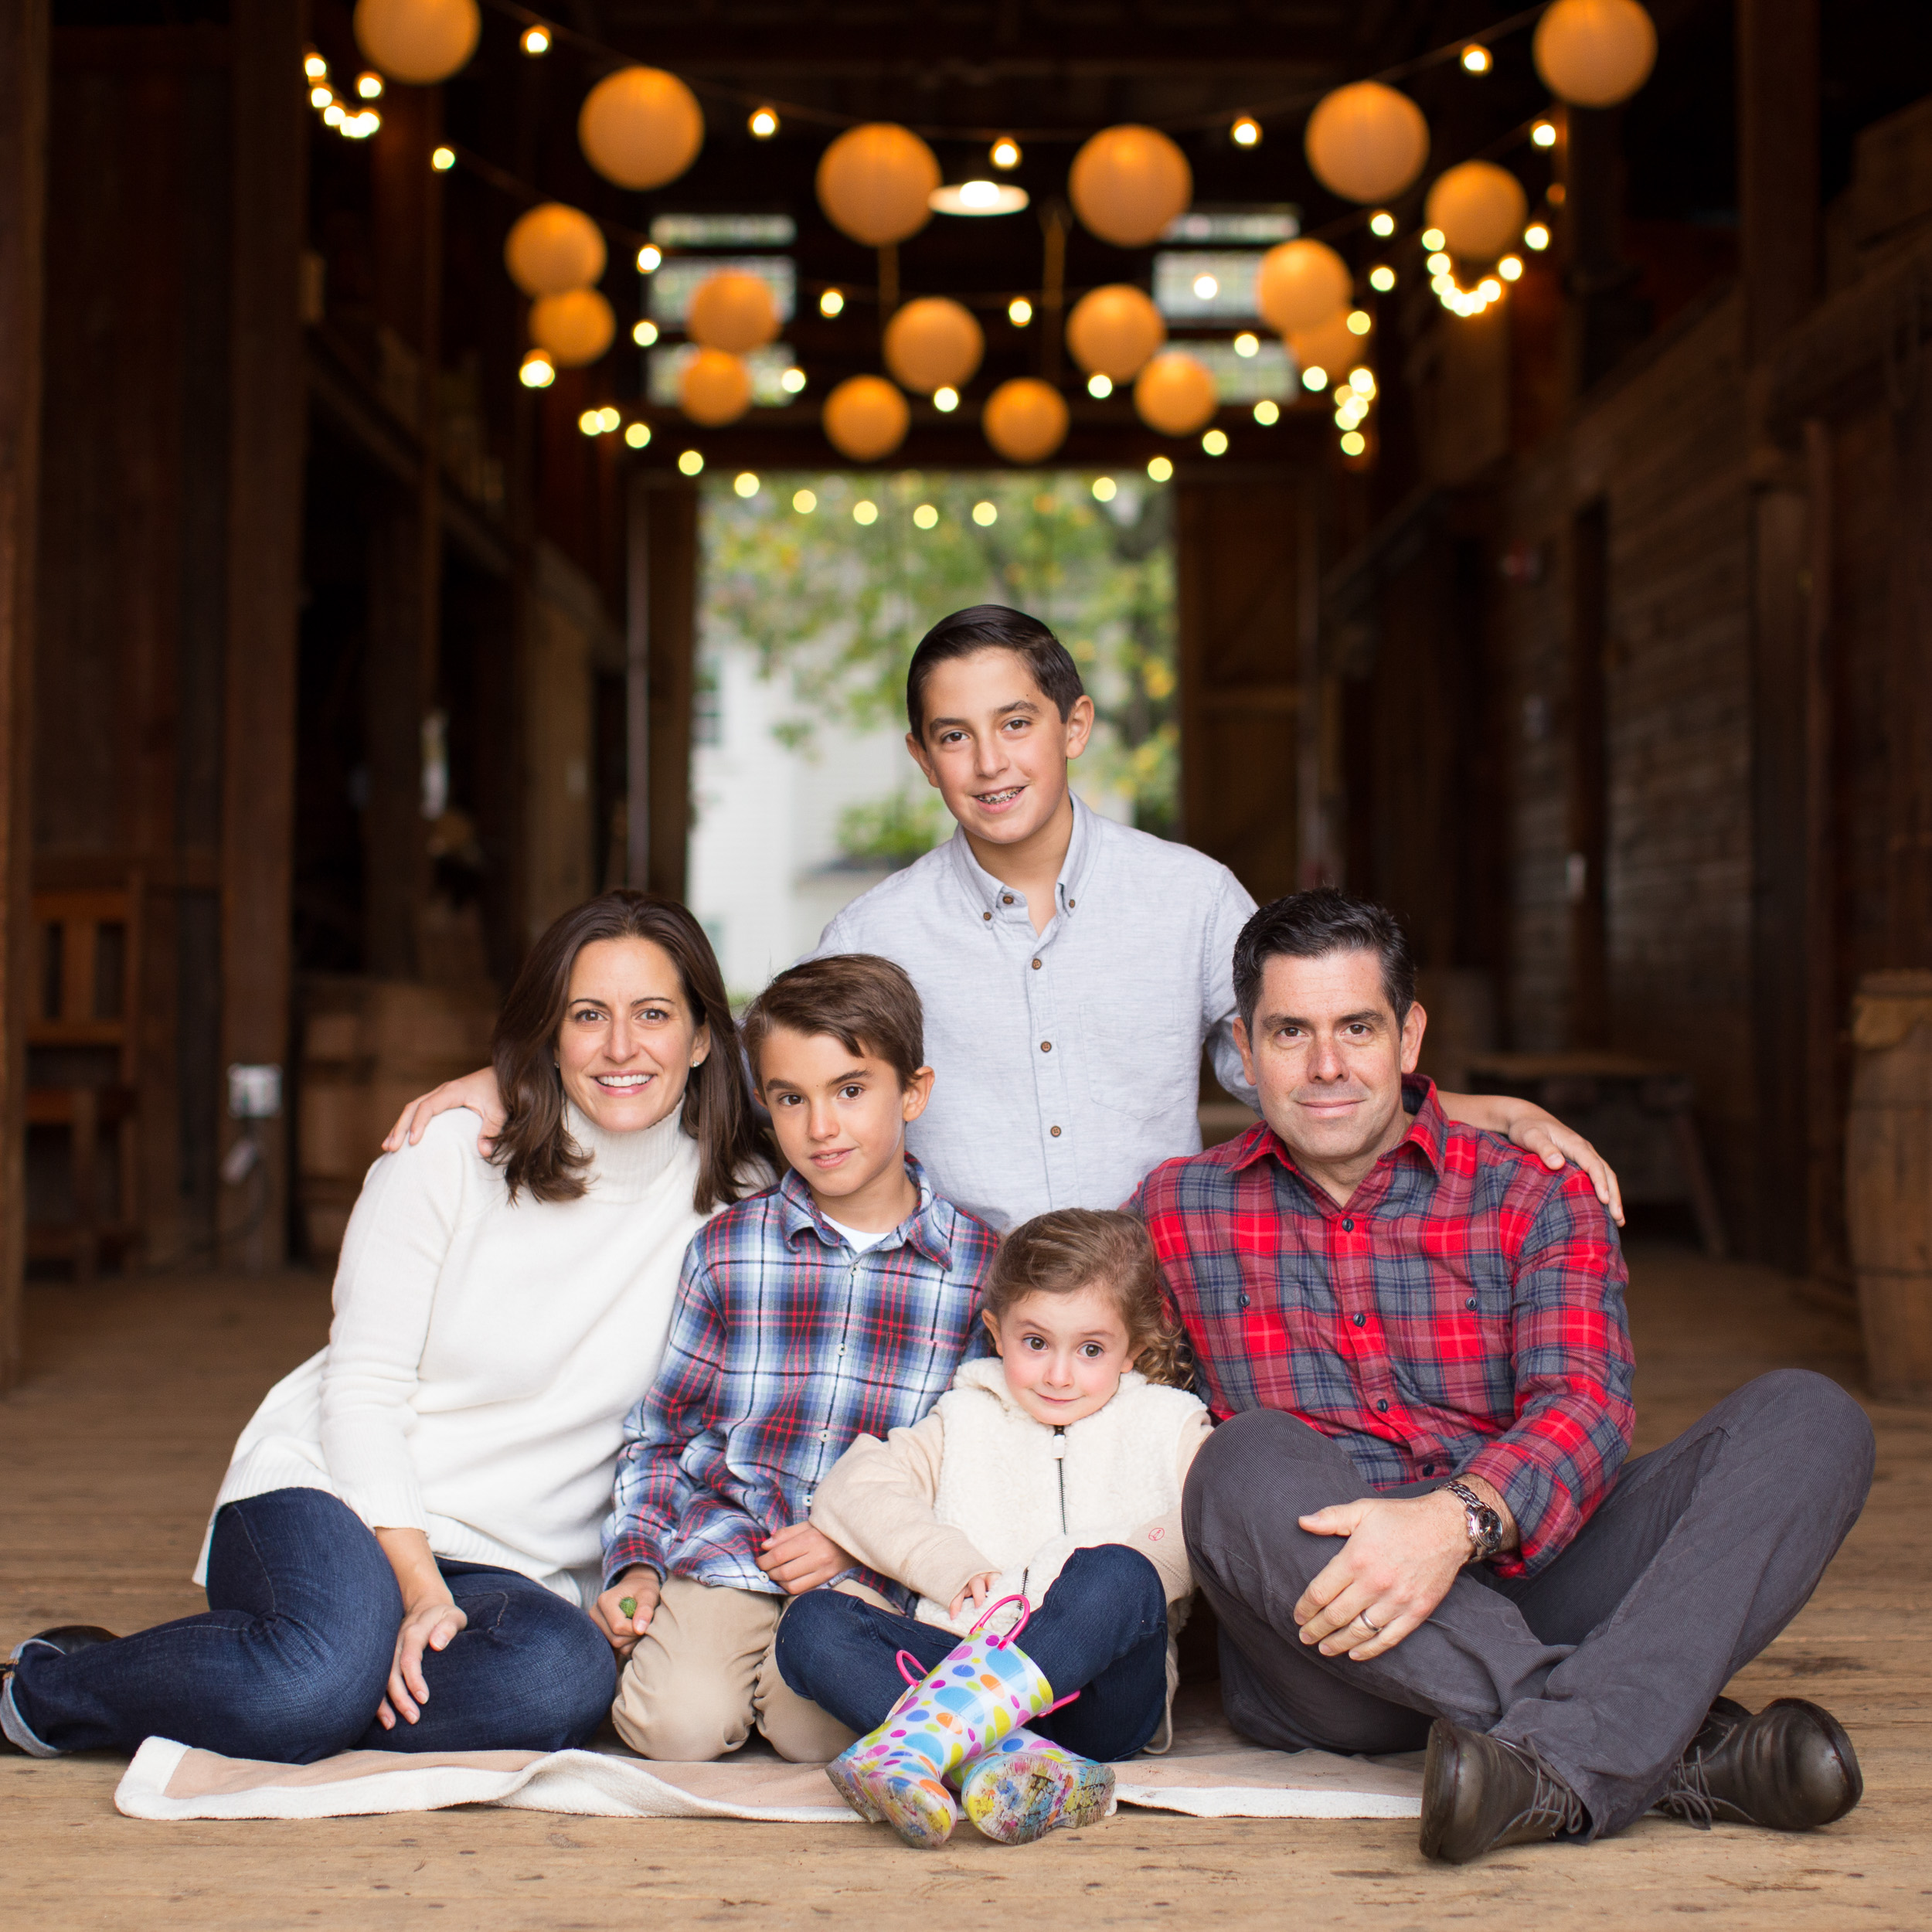 Family Photo in Barn